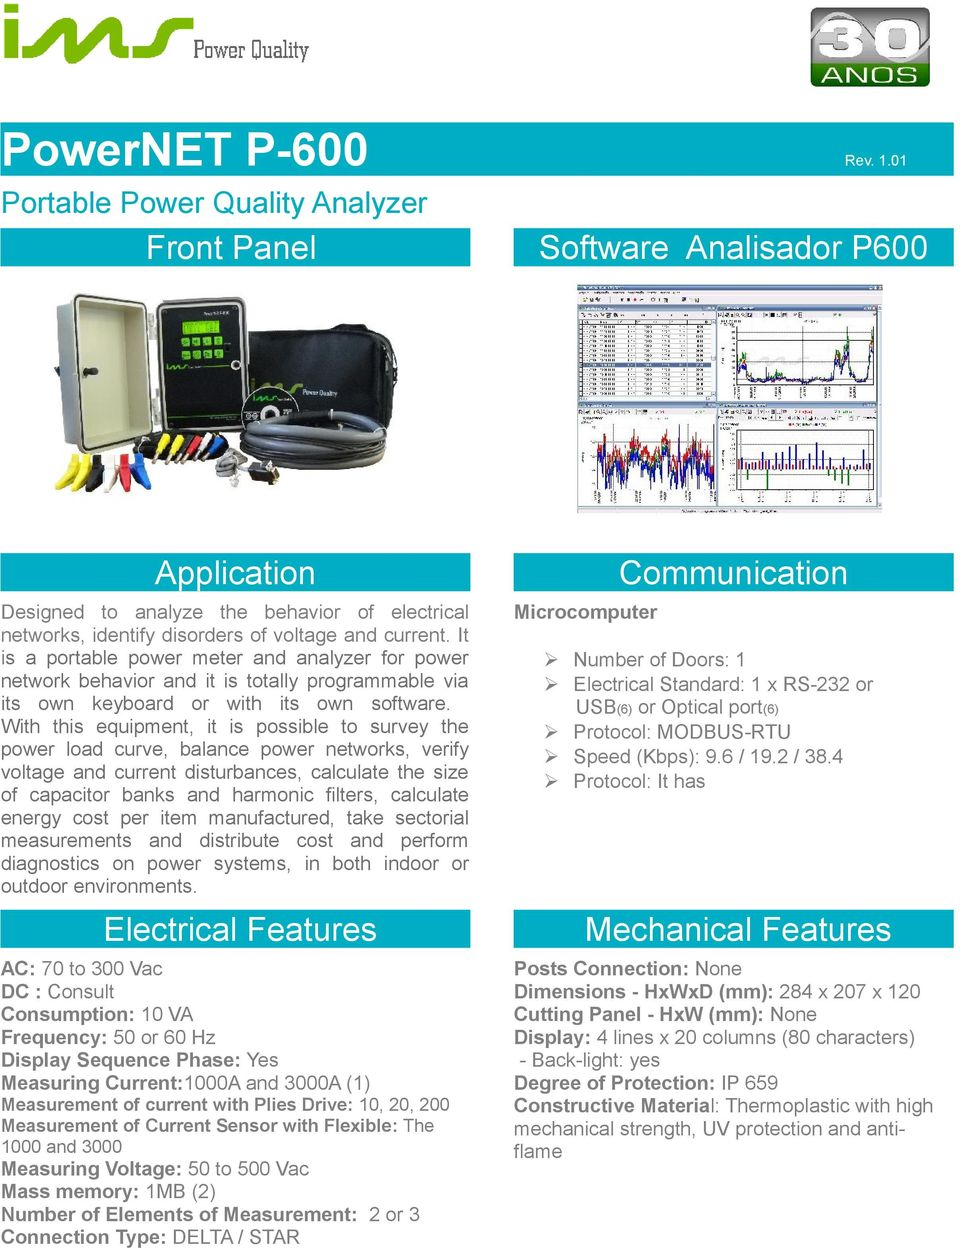 It is a portable power meter and analyzer for power network behavior and it is totally programmable via its own keyboard or with its own software.